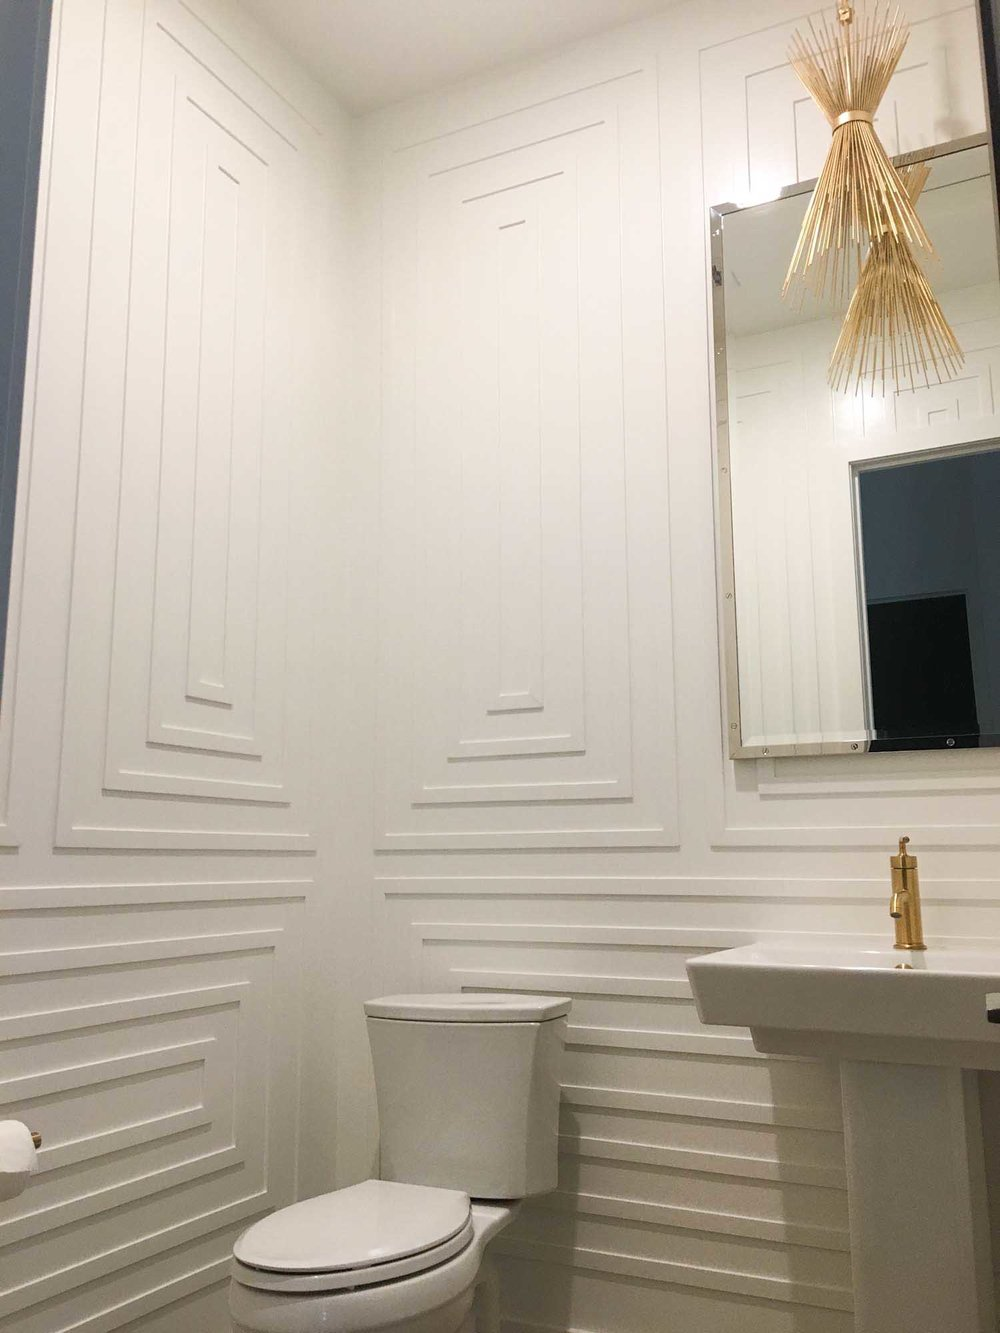 Toilet with white decorative wall and stylish lights